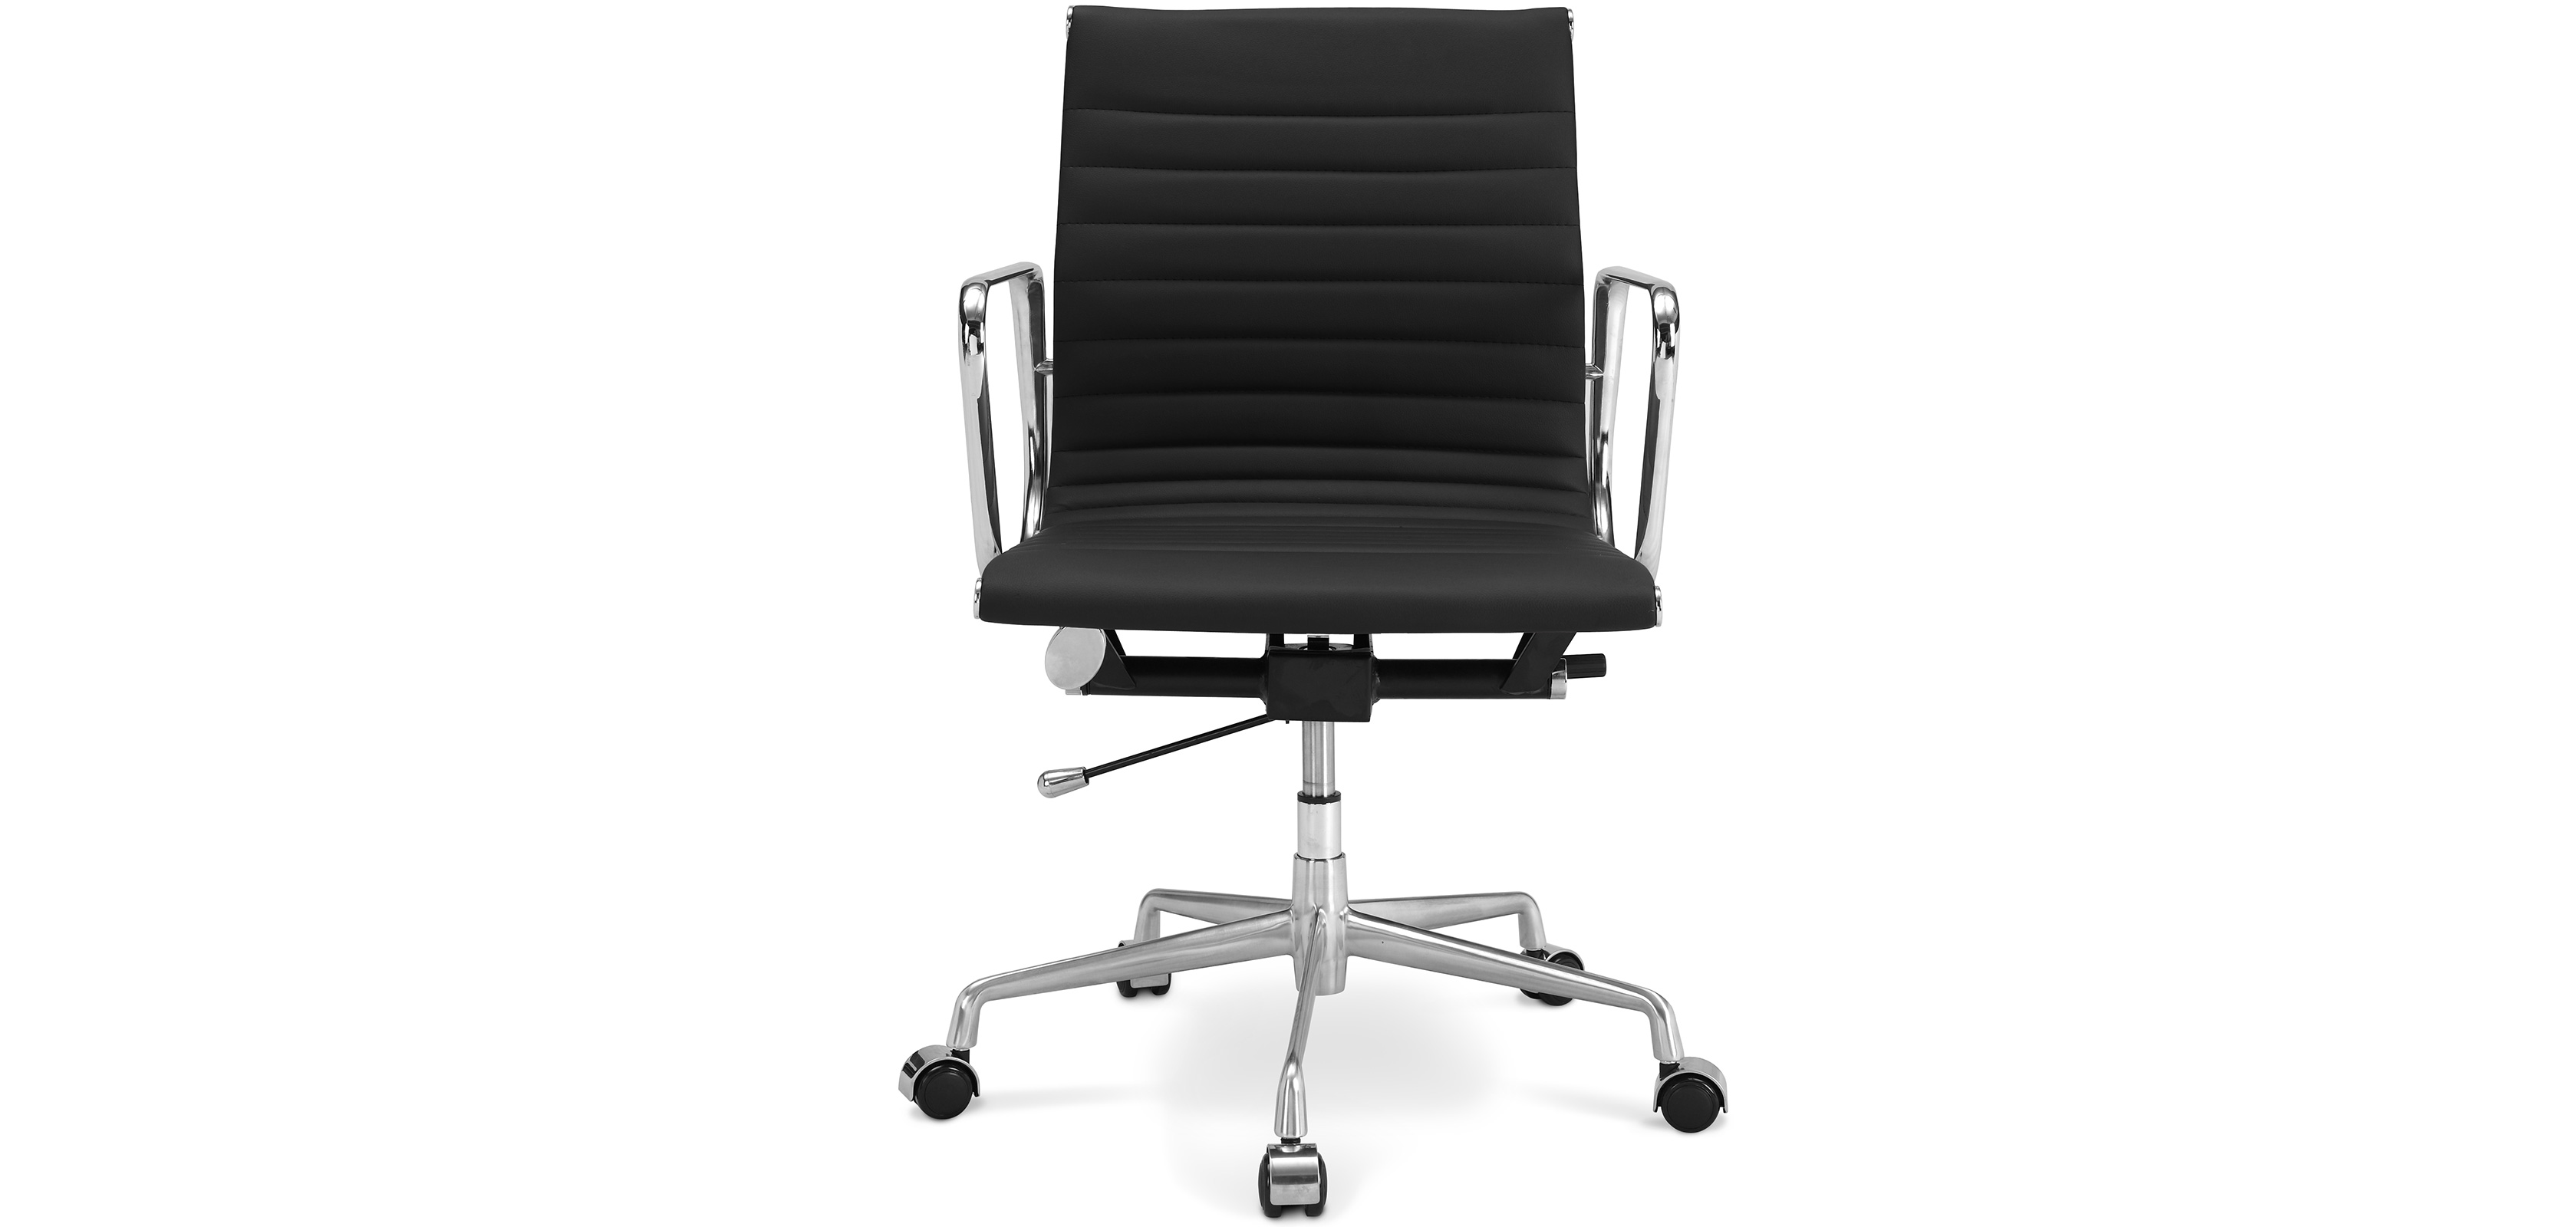 Office chair t17 premium leather wheels desk chairs - Chaise bureau architecte ...